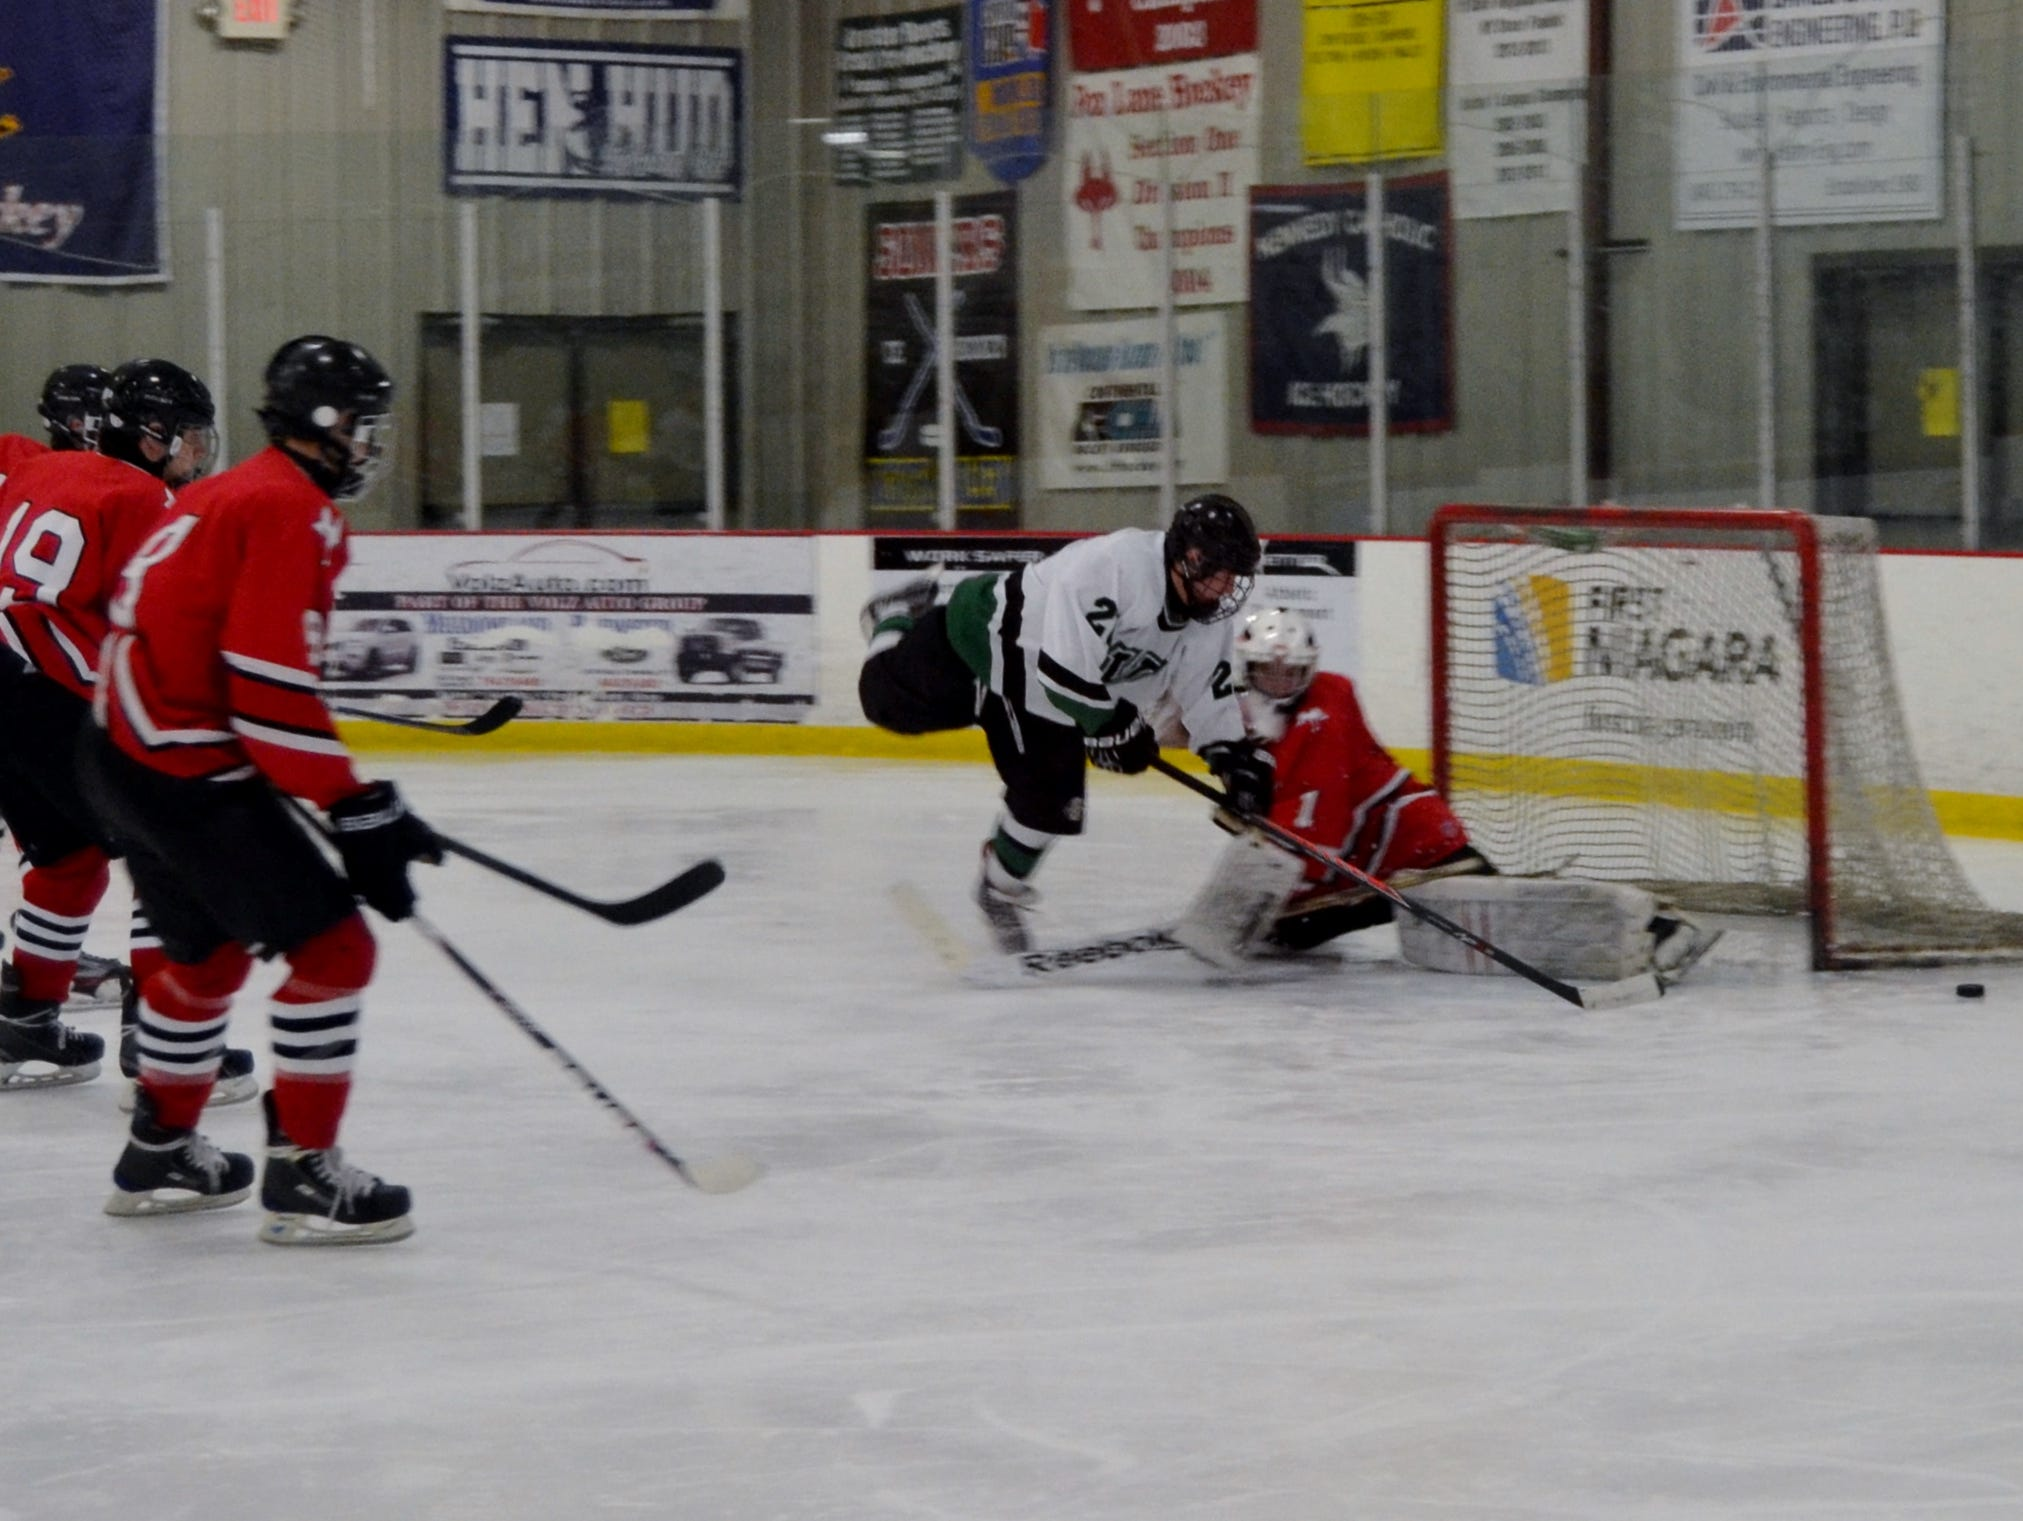 Fox Lane goalie Abbie Ives stops Yorktown's Liam Donnelly on a rush during a 4-2 win Sunday in the opening round of the Section 1 Divison 2 tournament at BIA.